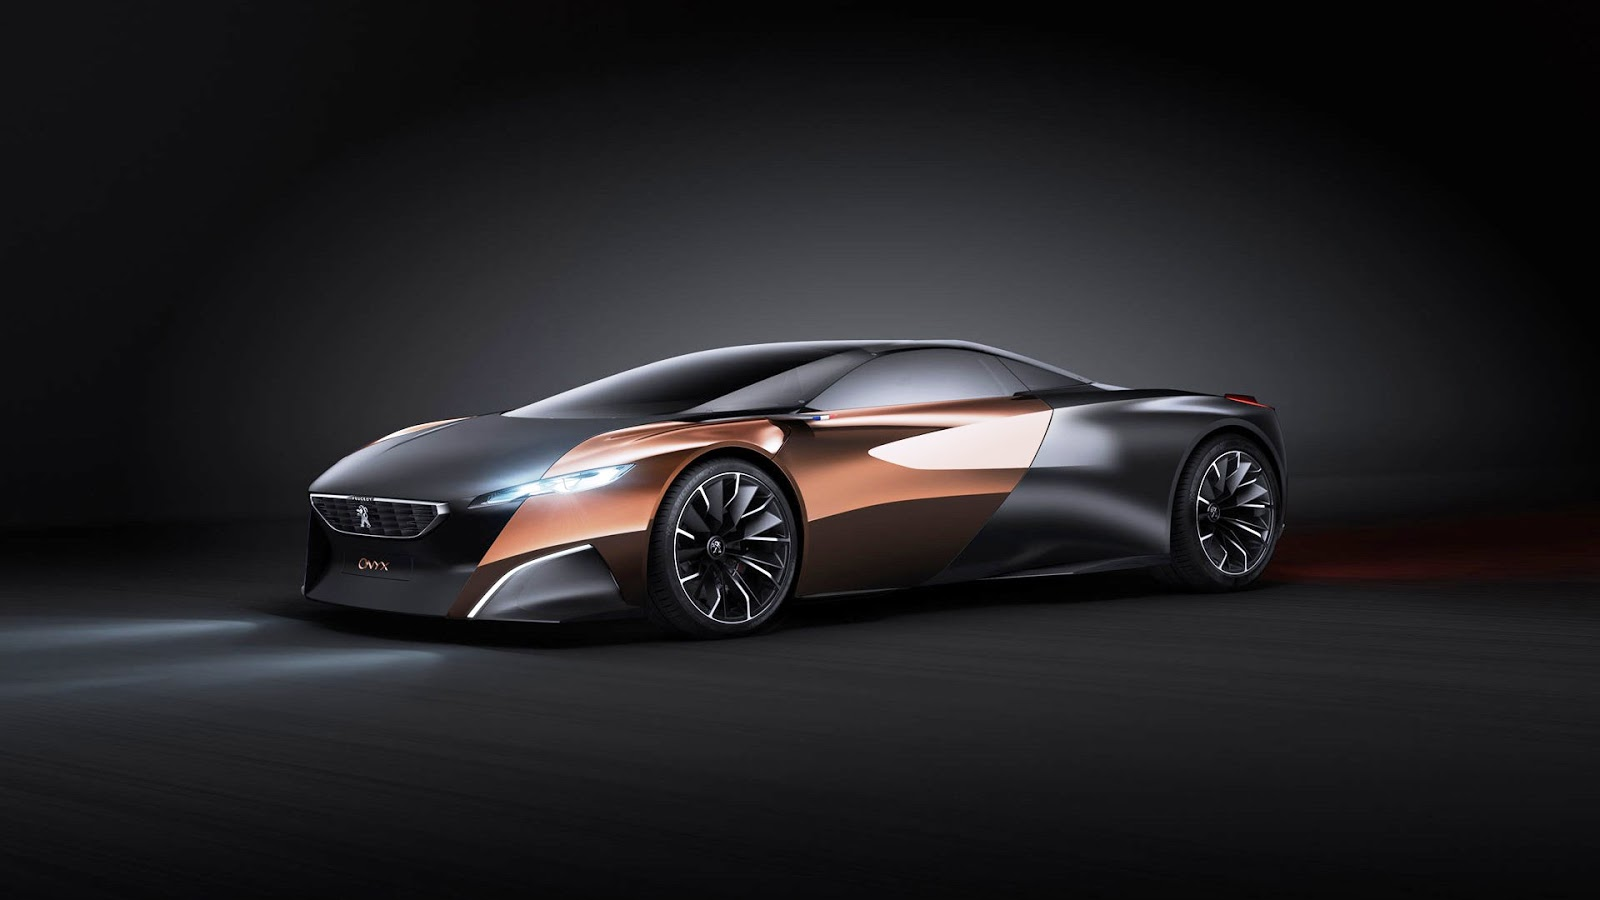 Car Wallpaper Border Full Hd Exotic Car Wallpapers 2012 Peugeot Onyx Concept